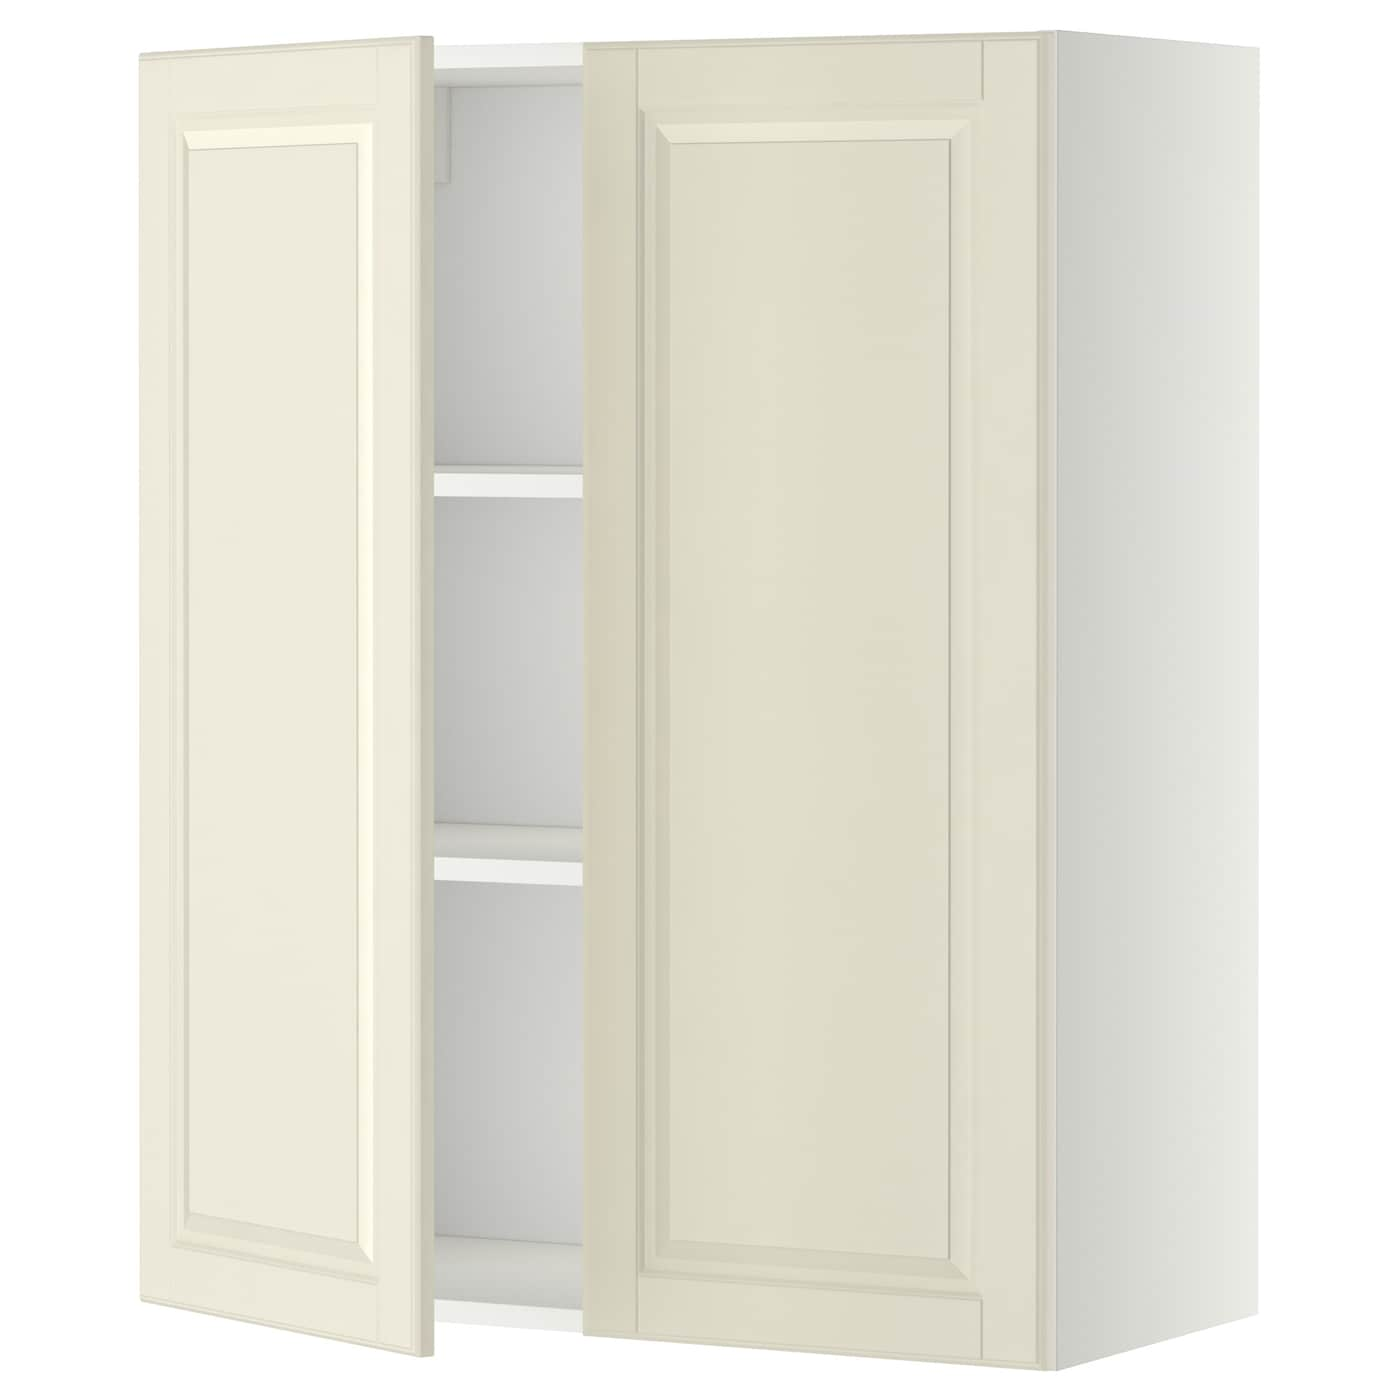 METOD Wall cabinet with shelves 2 doors White bodbyn off white